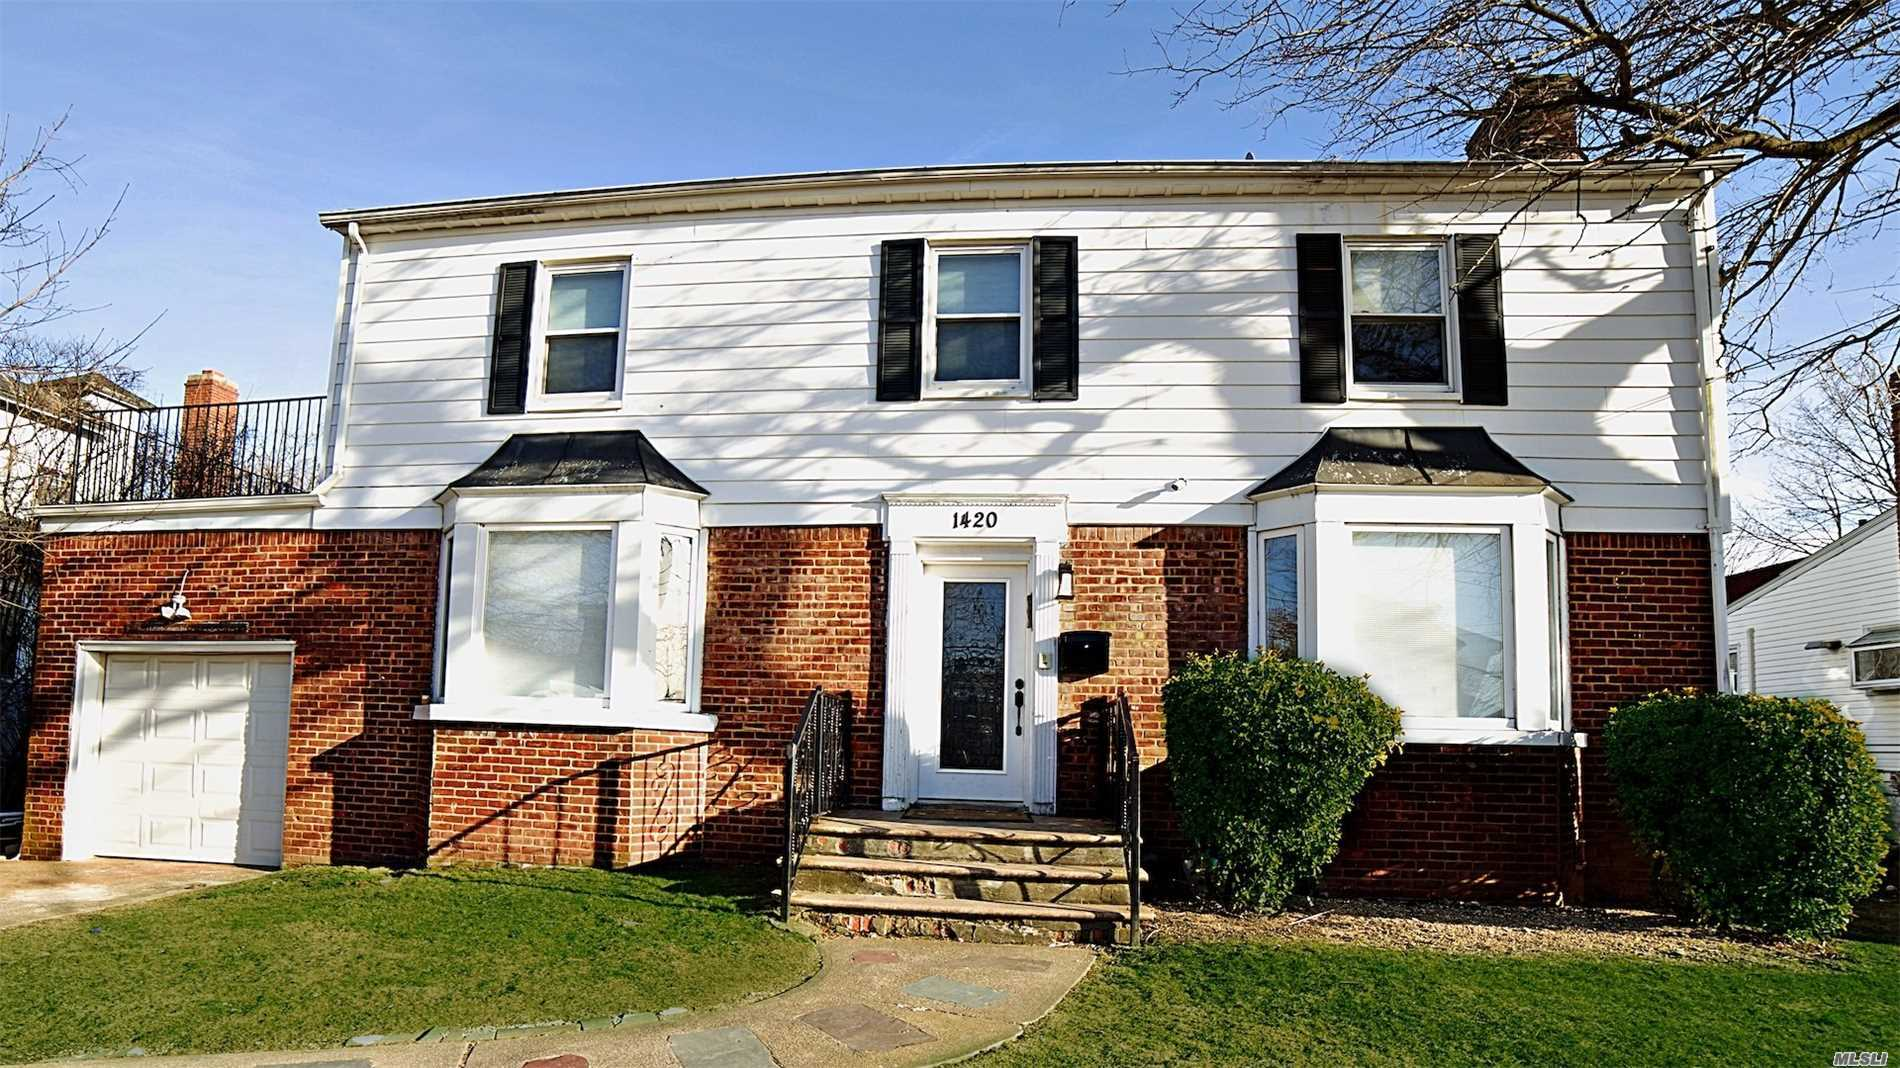 Excellent Condition House On Oversize Property. Hardwood Floors Through Out . Formal Dining Room And Huge Open Concept Kitchen. Large Formal Dining Room And Formal Living Room. 0.5 Bath. 4Br On The 2nd Floor And 2 Full Bath.